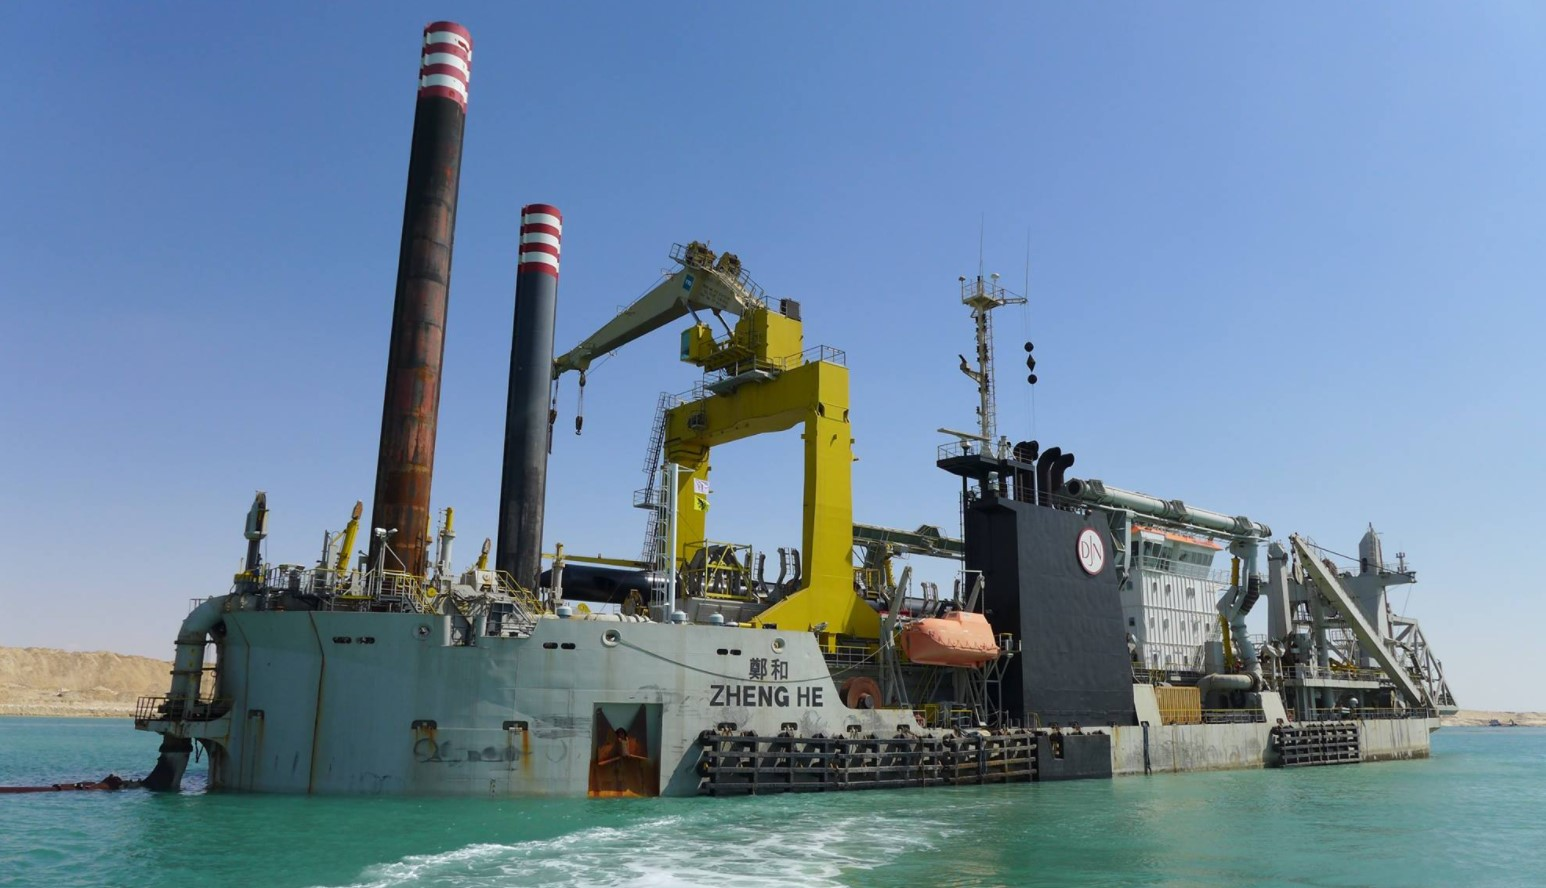 Dredging the new Suez Canal